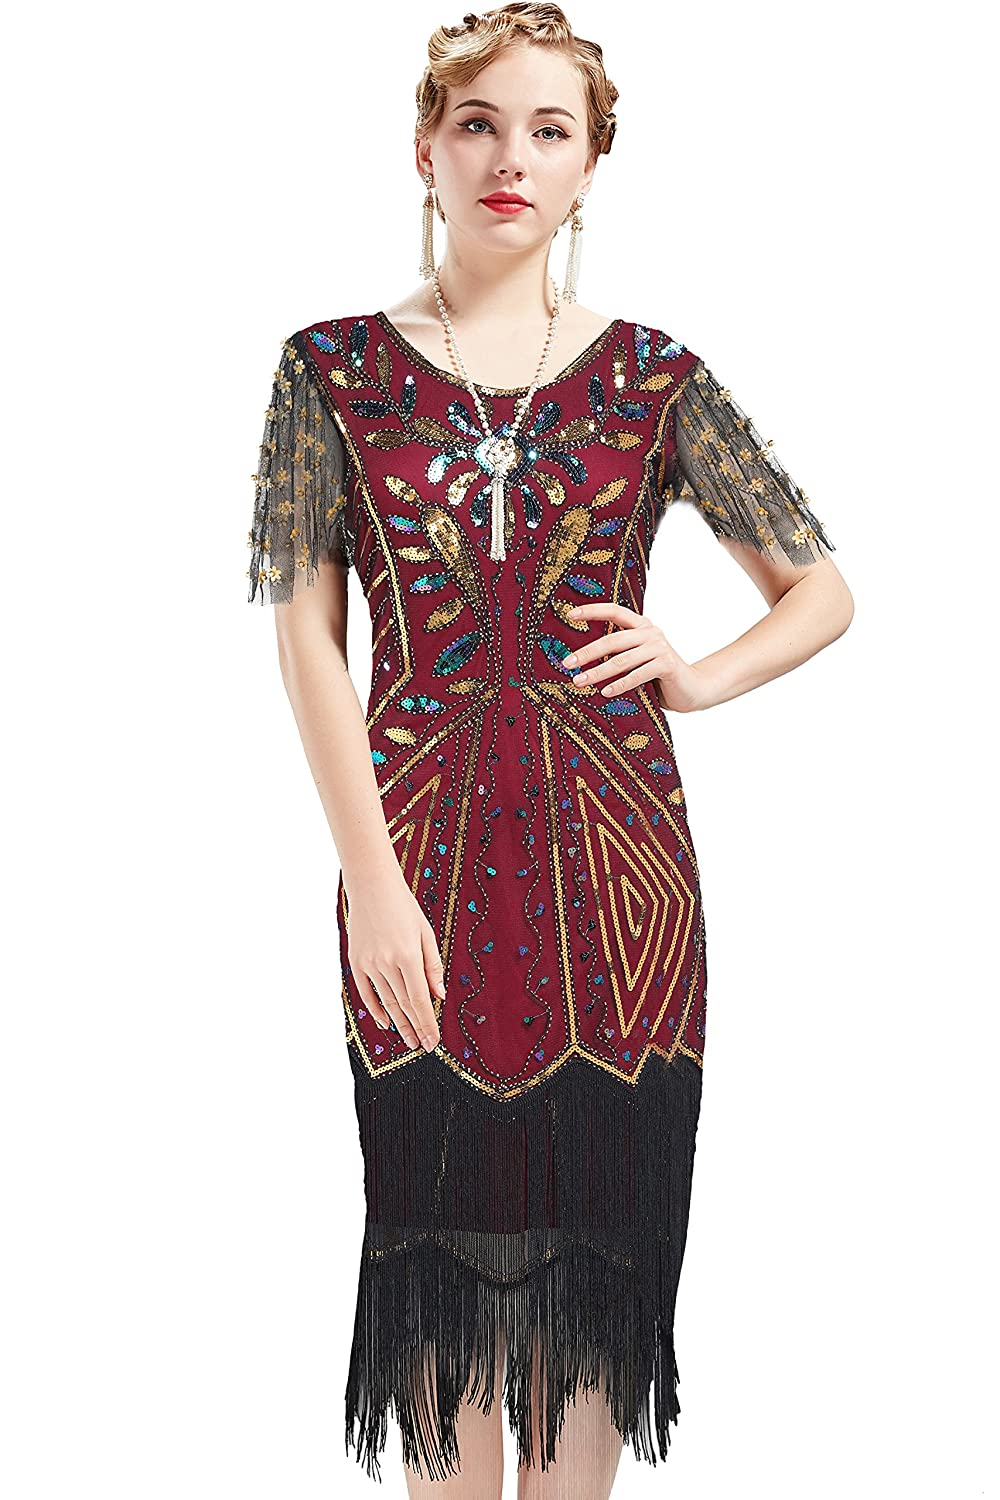 560cd5d844289 1920s flapper dress size: S = US 4-6 , M = US 8-10 , L = US 12 , XL = US  14. Material: Polyester fabric and soft fringe, beads & sequins;  comfortable and ...